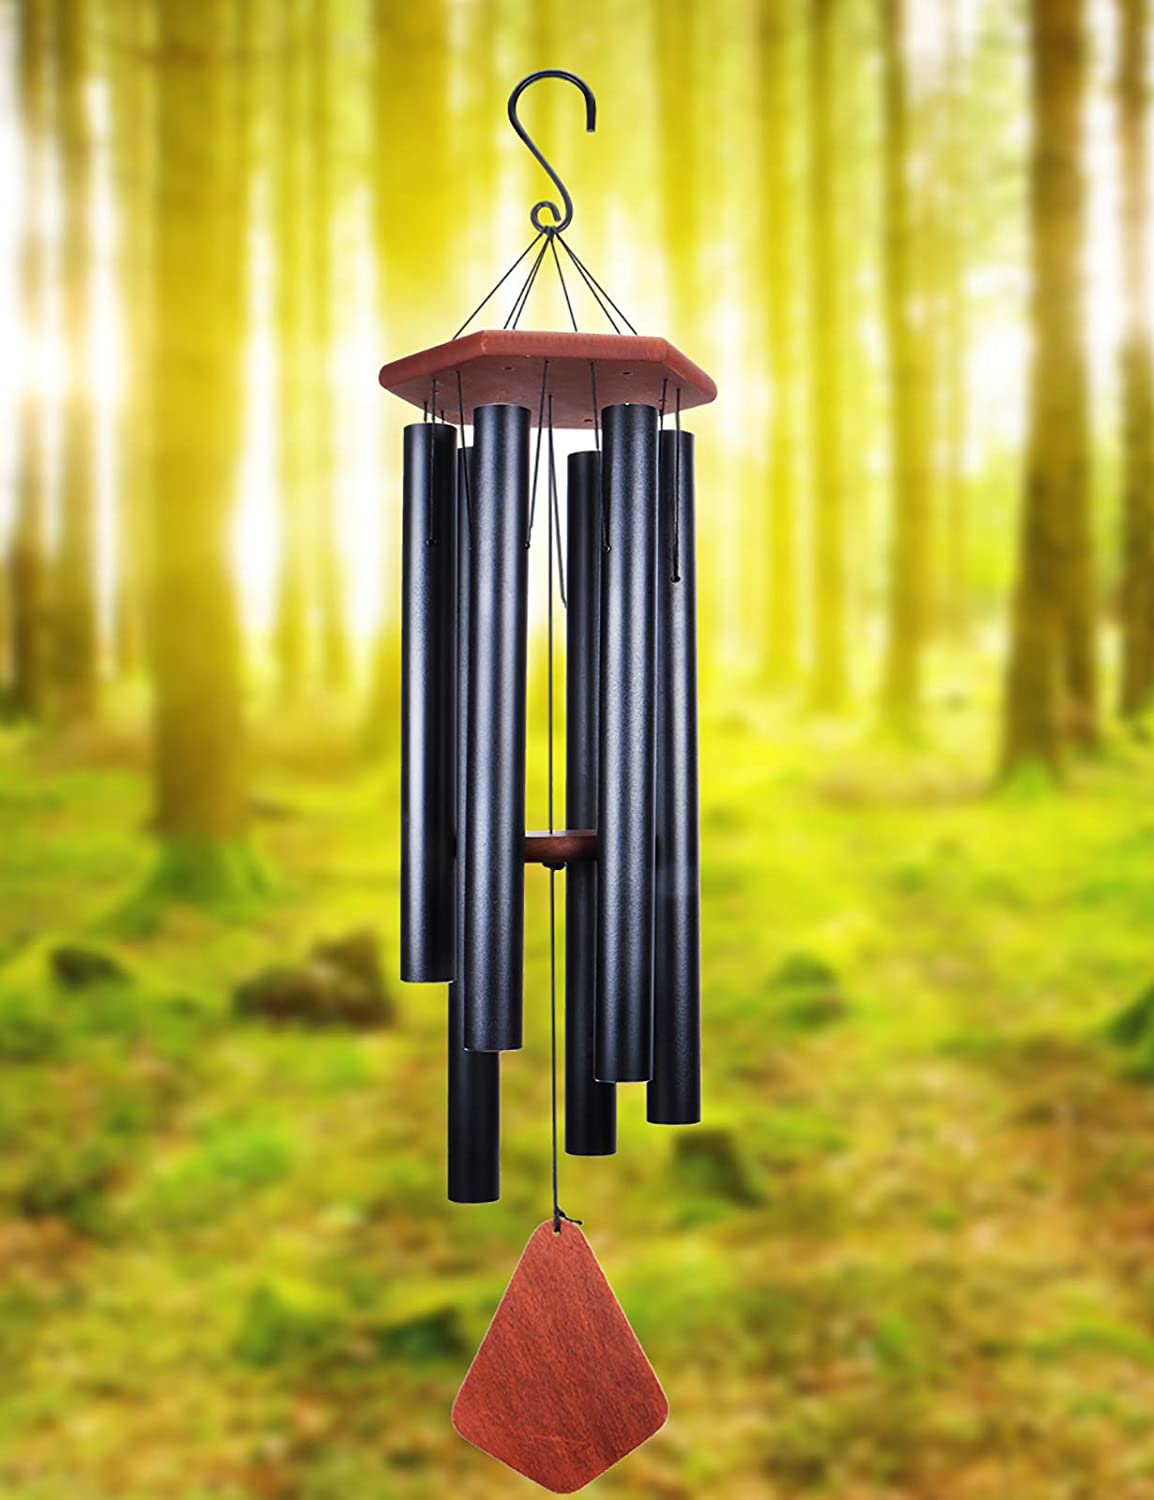 MUMTOP Wind Chimes Outdoor Large Deep Tone, Musical Tuned Wind Chimes, Metal Outdoor Decorative Wind Chimes Memorial and Sympathy